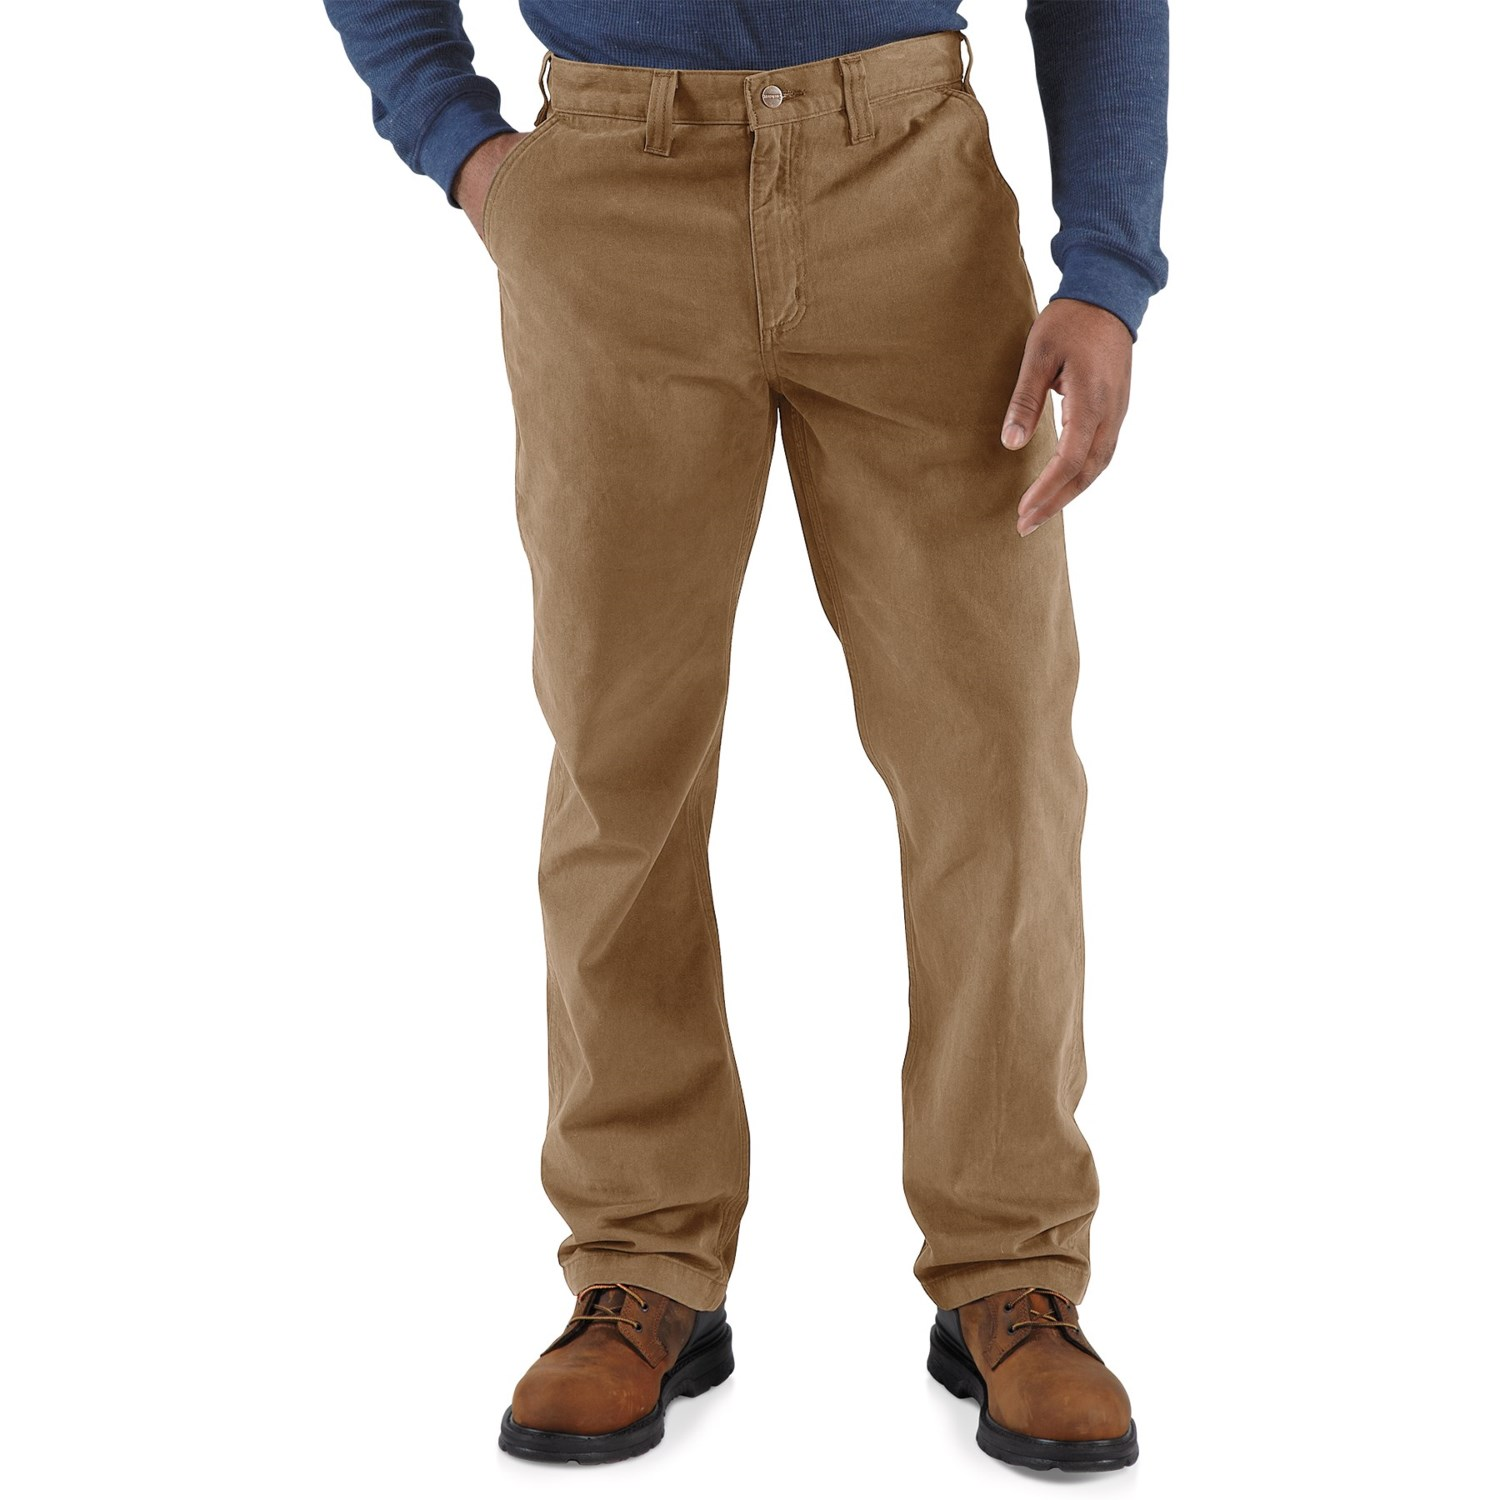 Shop men's chinos/khaki pants at Eddie Bauer. % Satisfaction guaranteed. Since